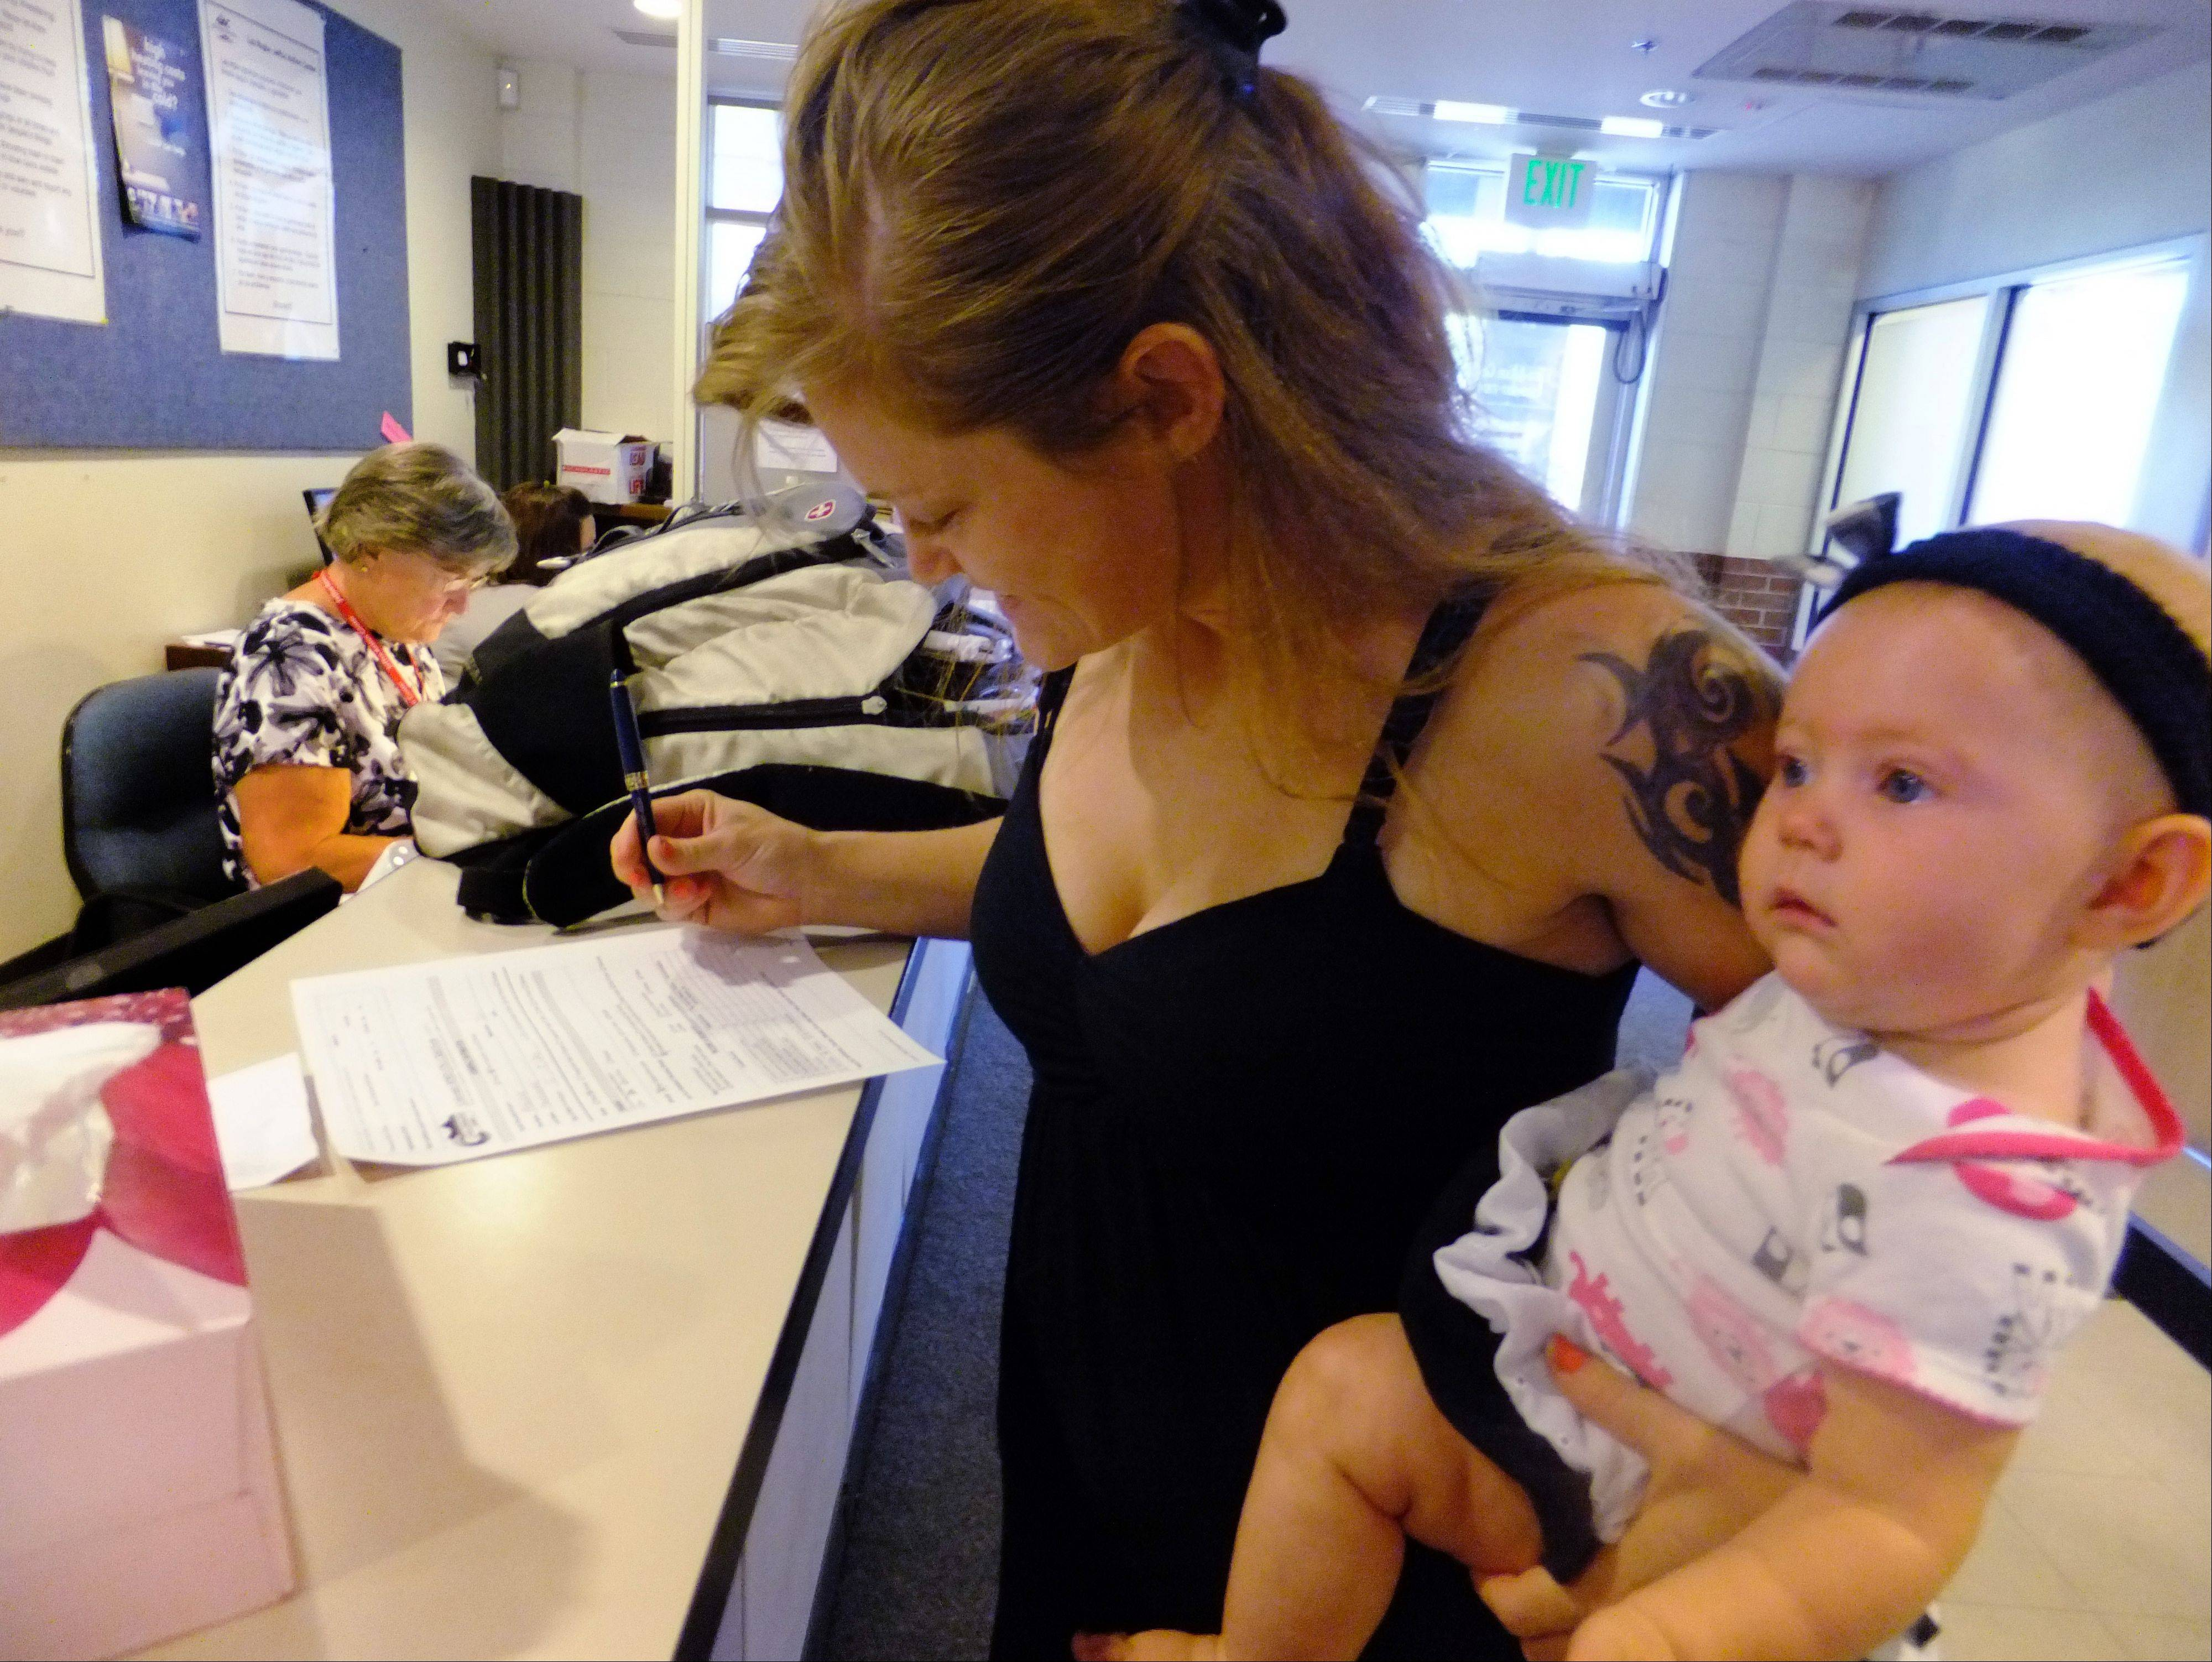 Laura Fritz, 27, left, with her daughter, Adalade Goudeseune, fills out a form at the Jefferson Action Center, an assistance center in the Denver suburb of Lakewood. Fritz grew up in the Denver suburbs, a solidly middle class family, but she and her boyfriend, who has struggled to find work, and are now relying on government assistance to cover food and $650 rent for their family.